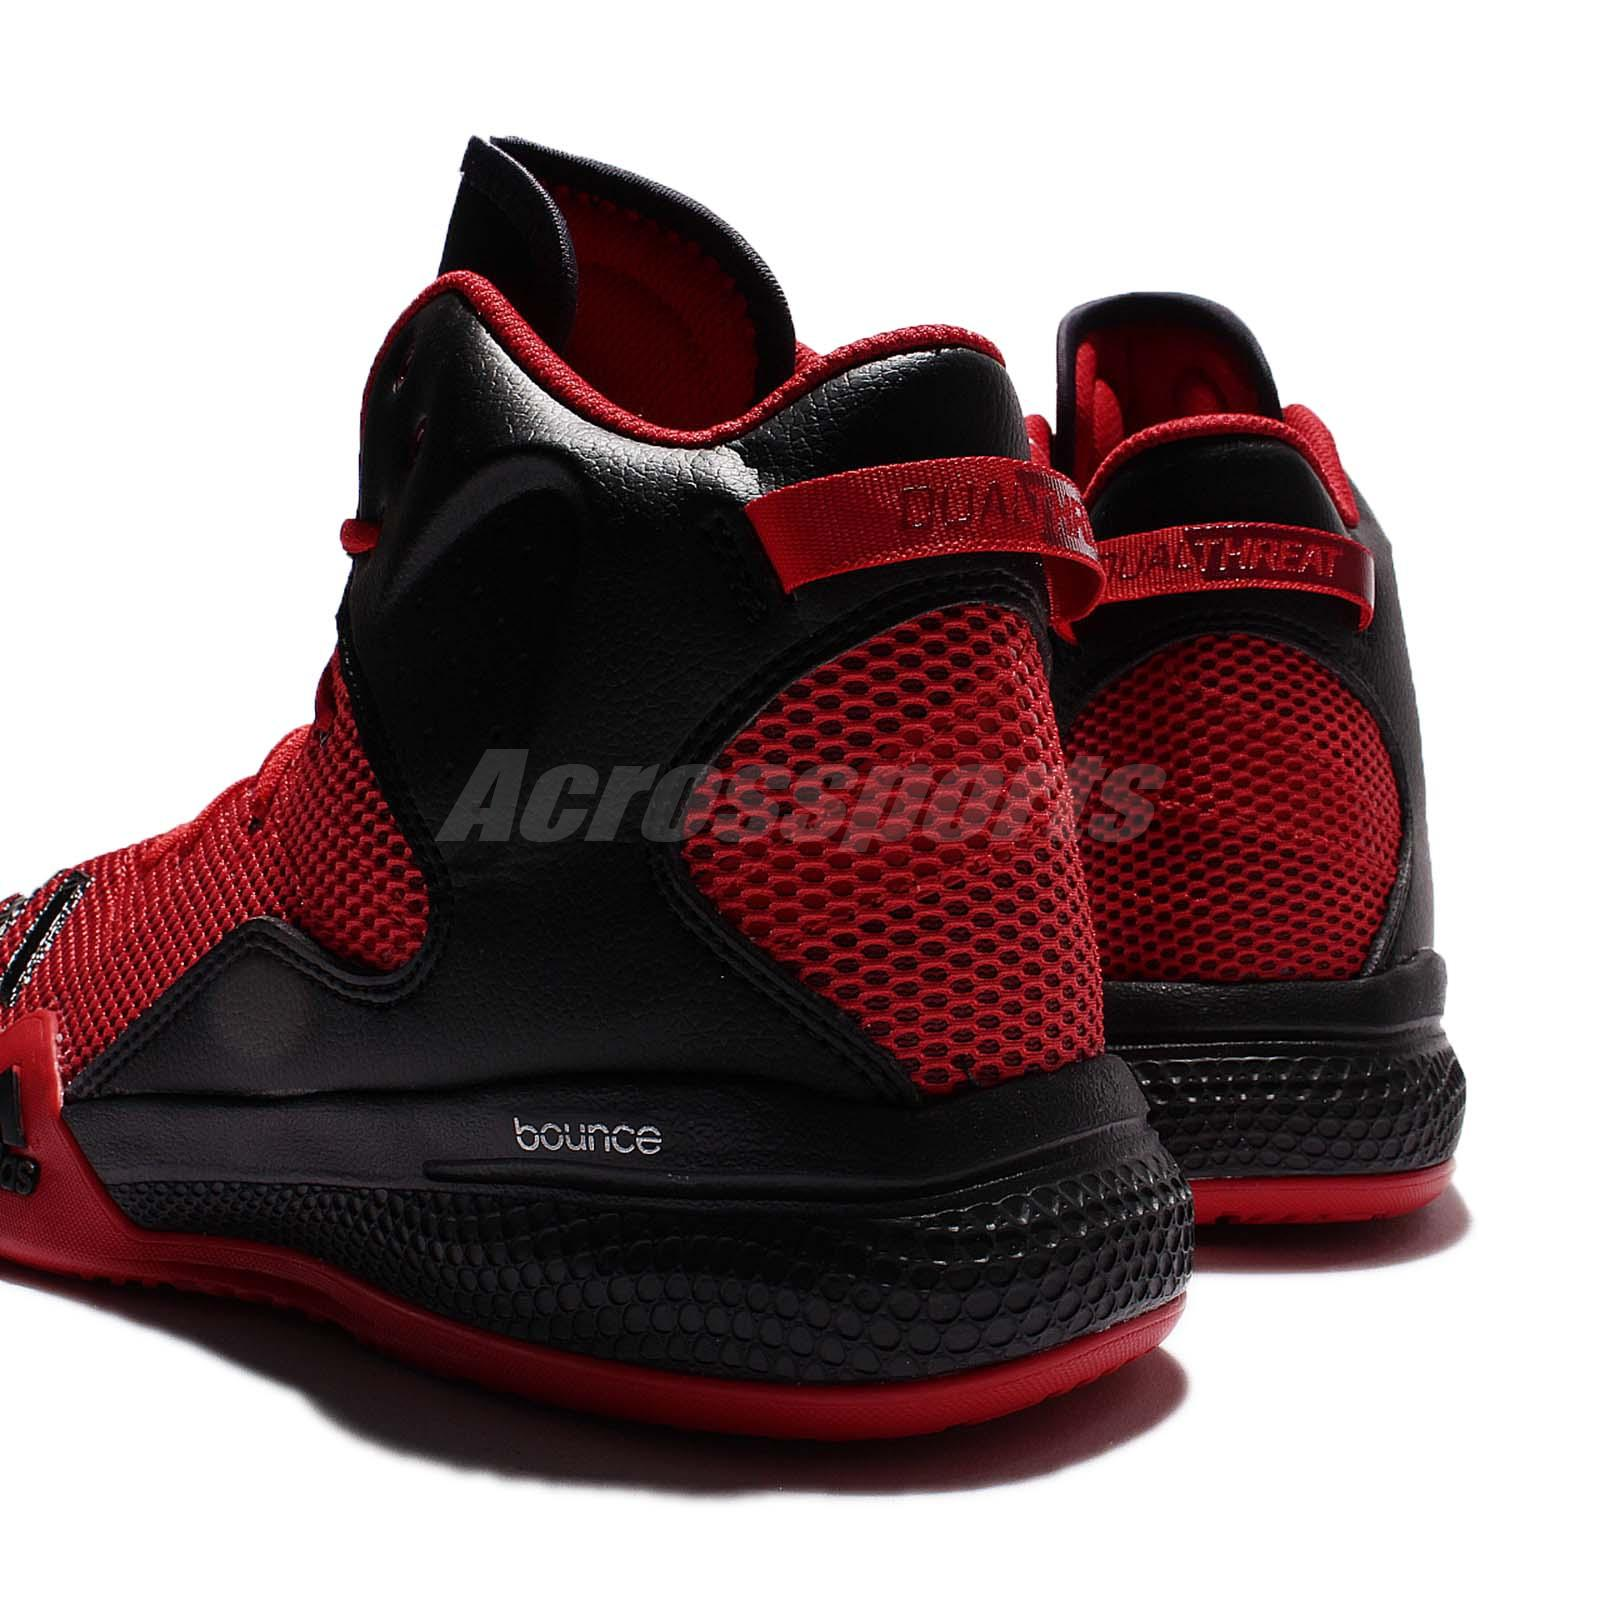 adidas red and black basketball shoes